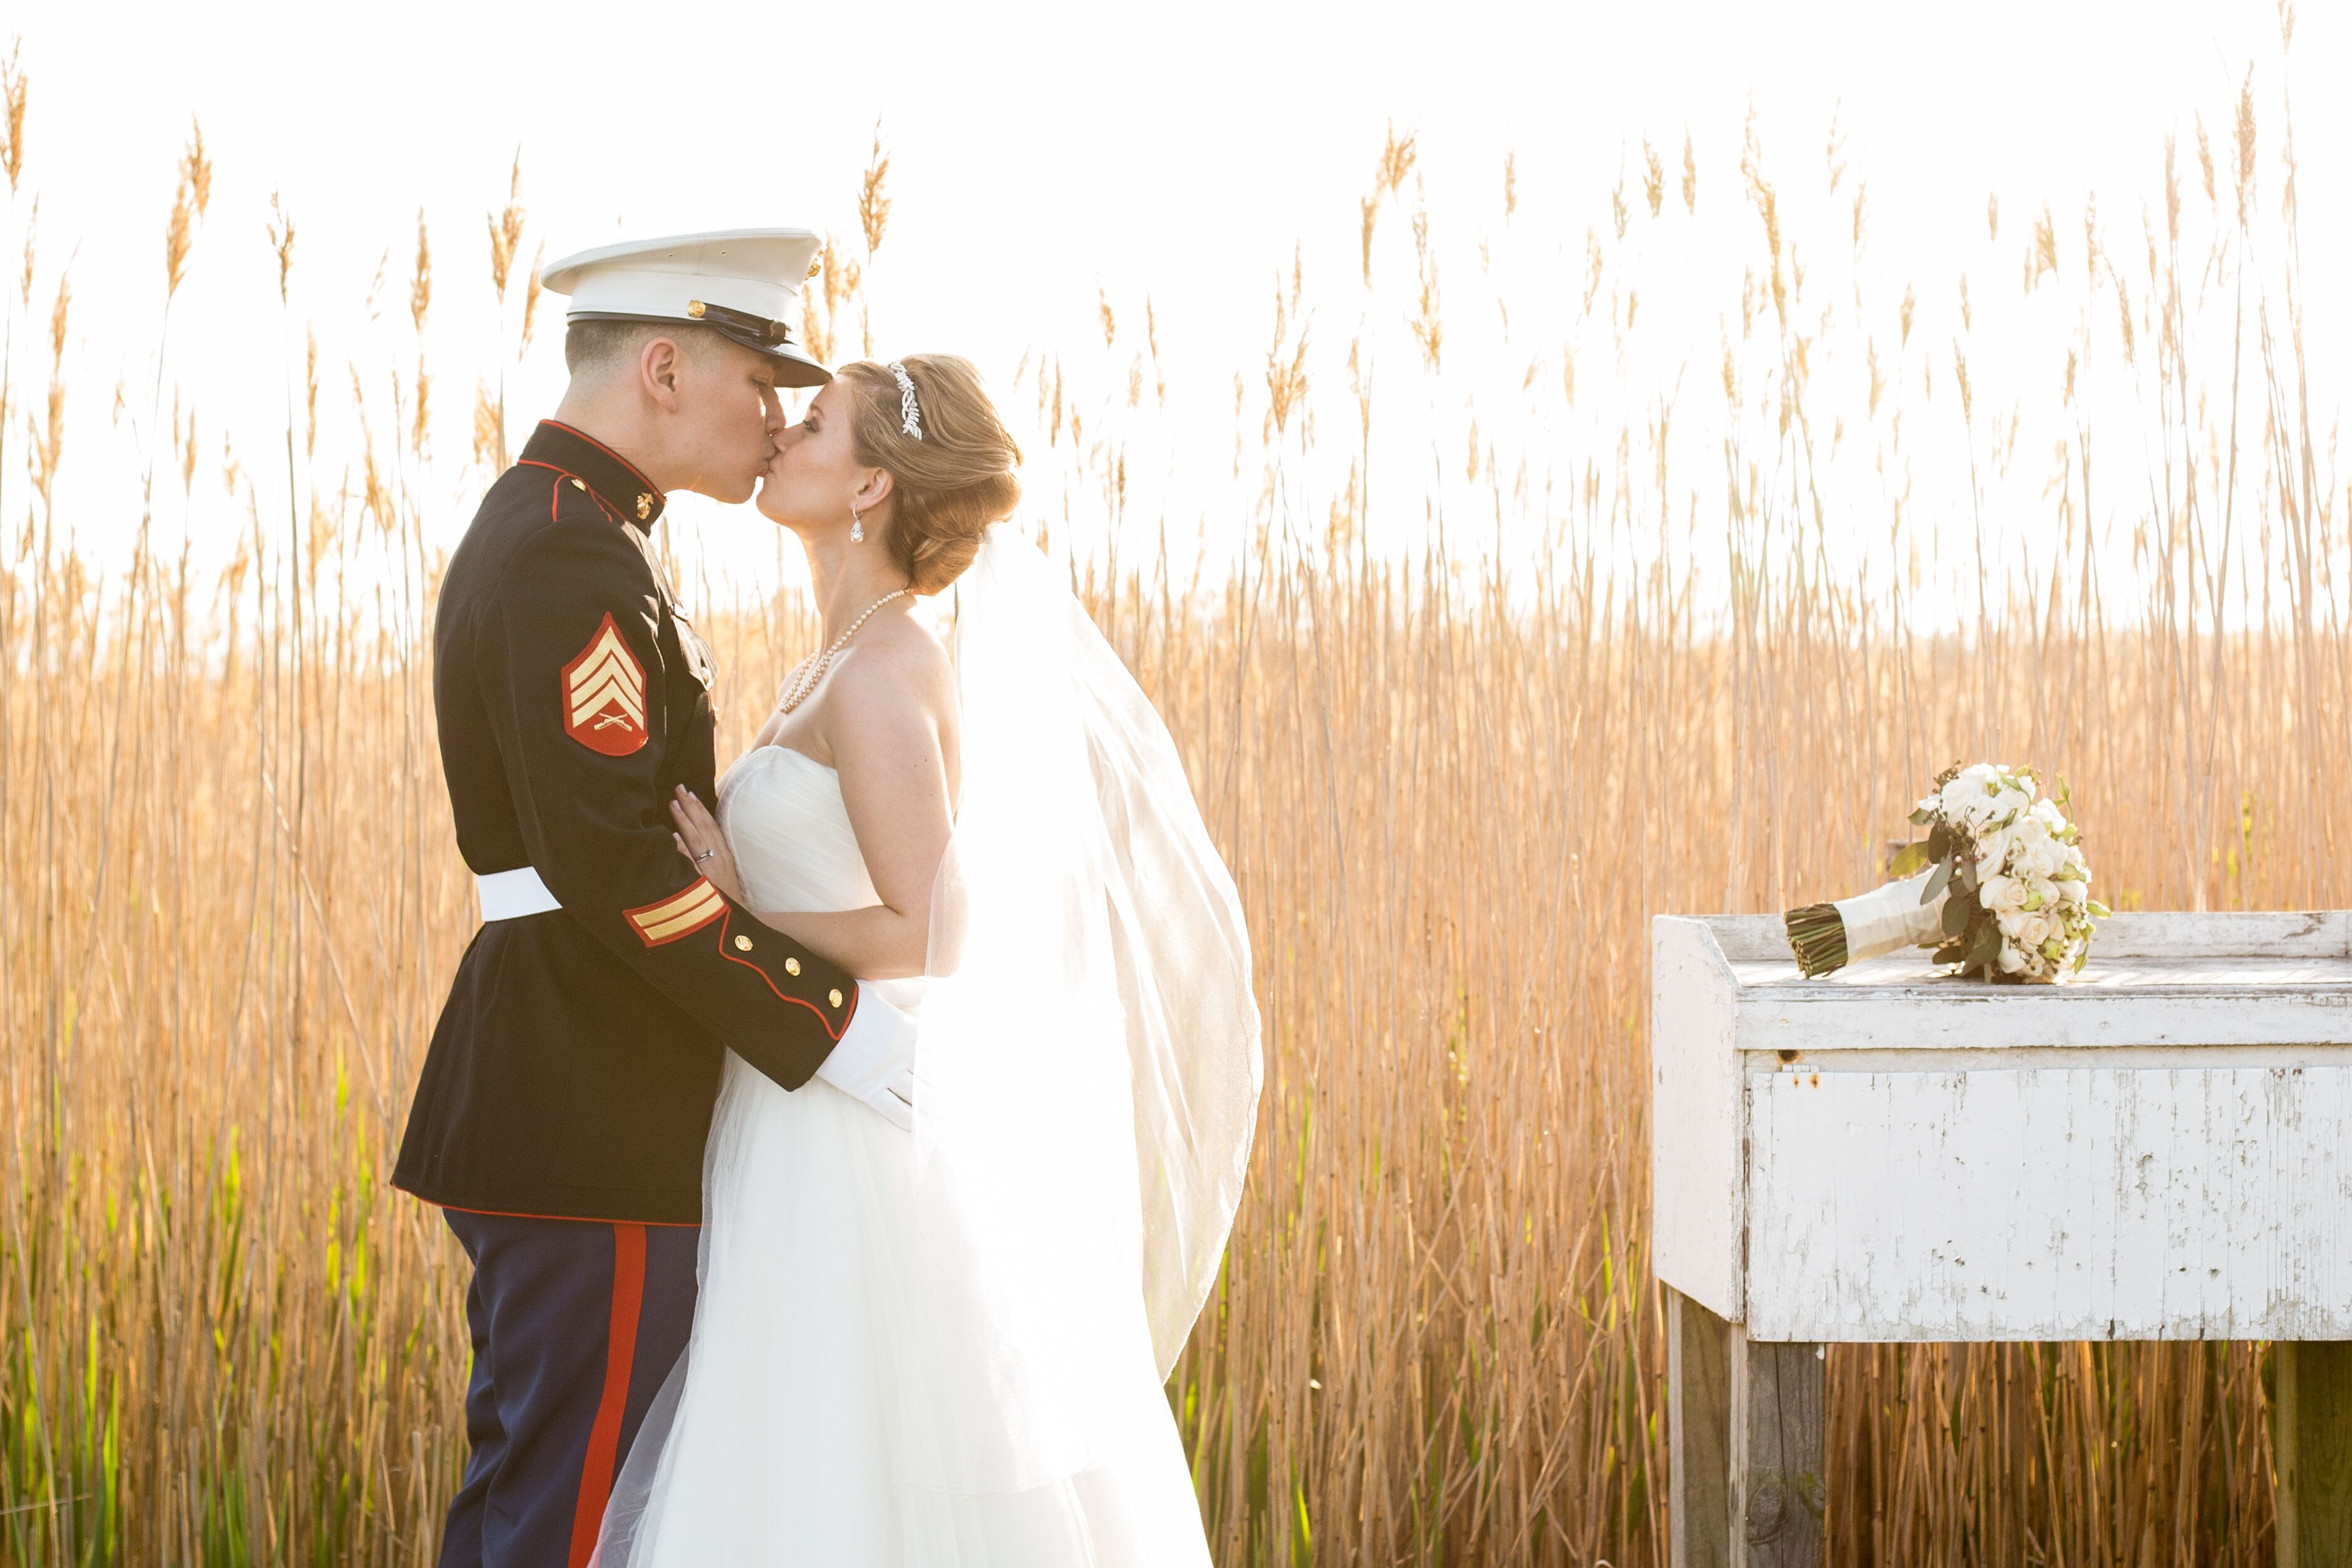 Wedding Gifts For Military Couples: A Vintage Military Wedding At The West Sayville Country